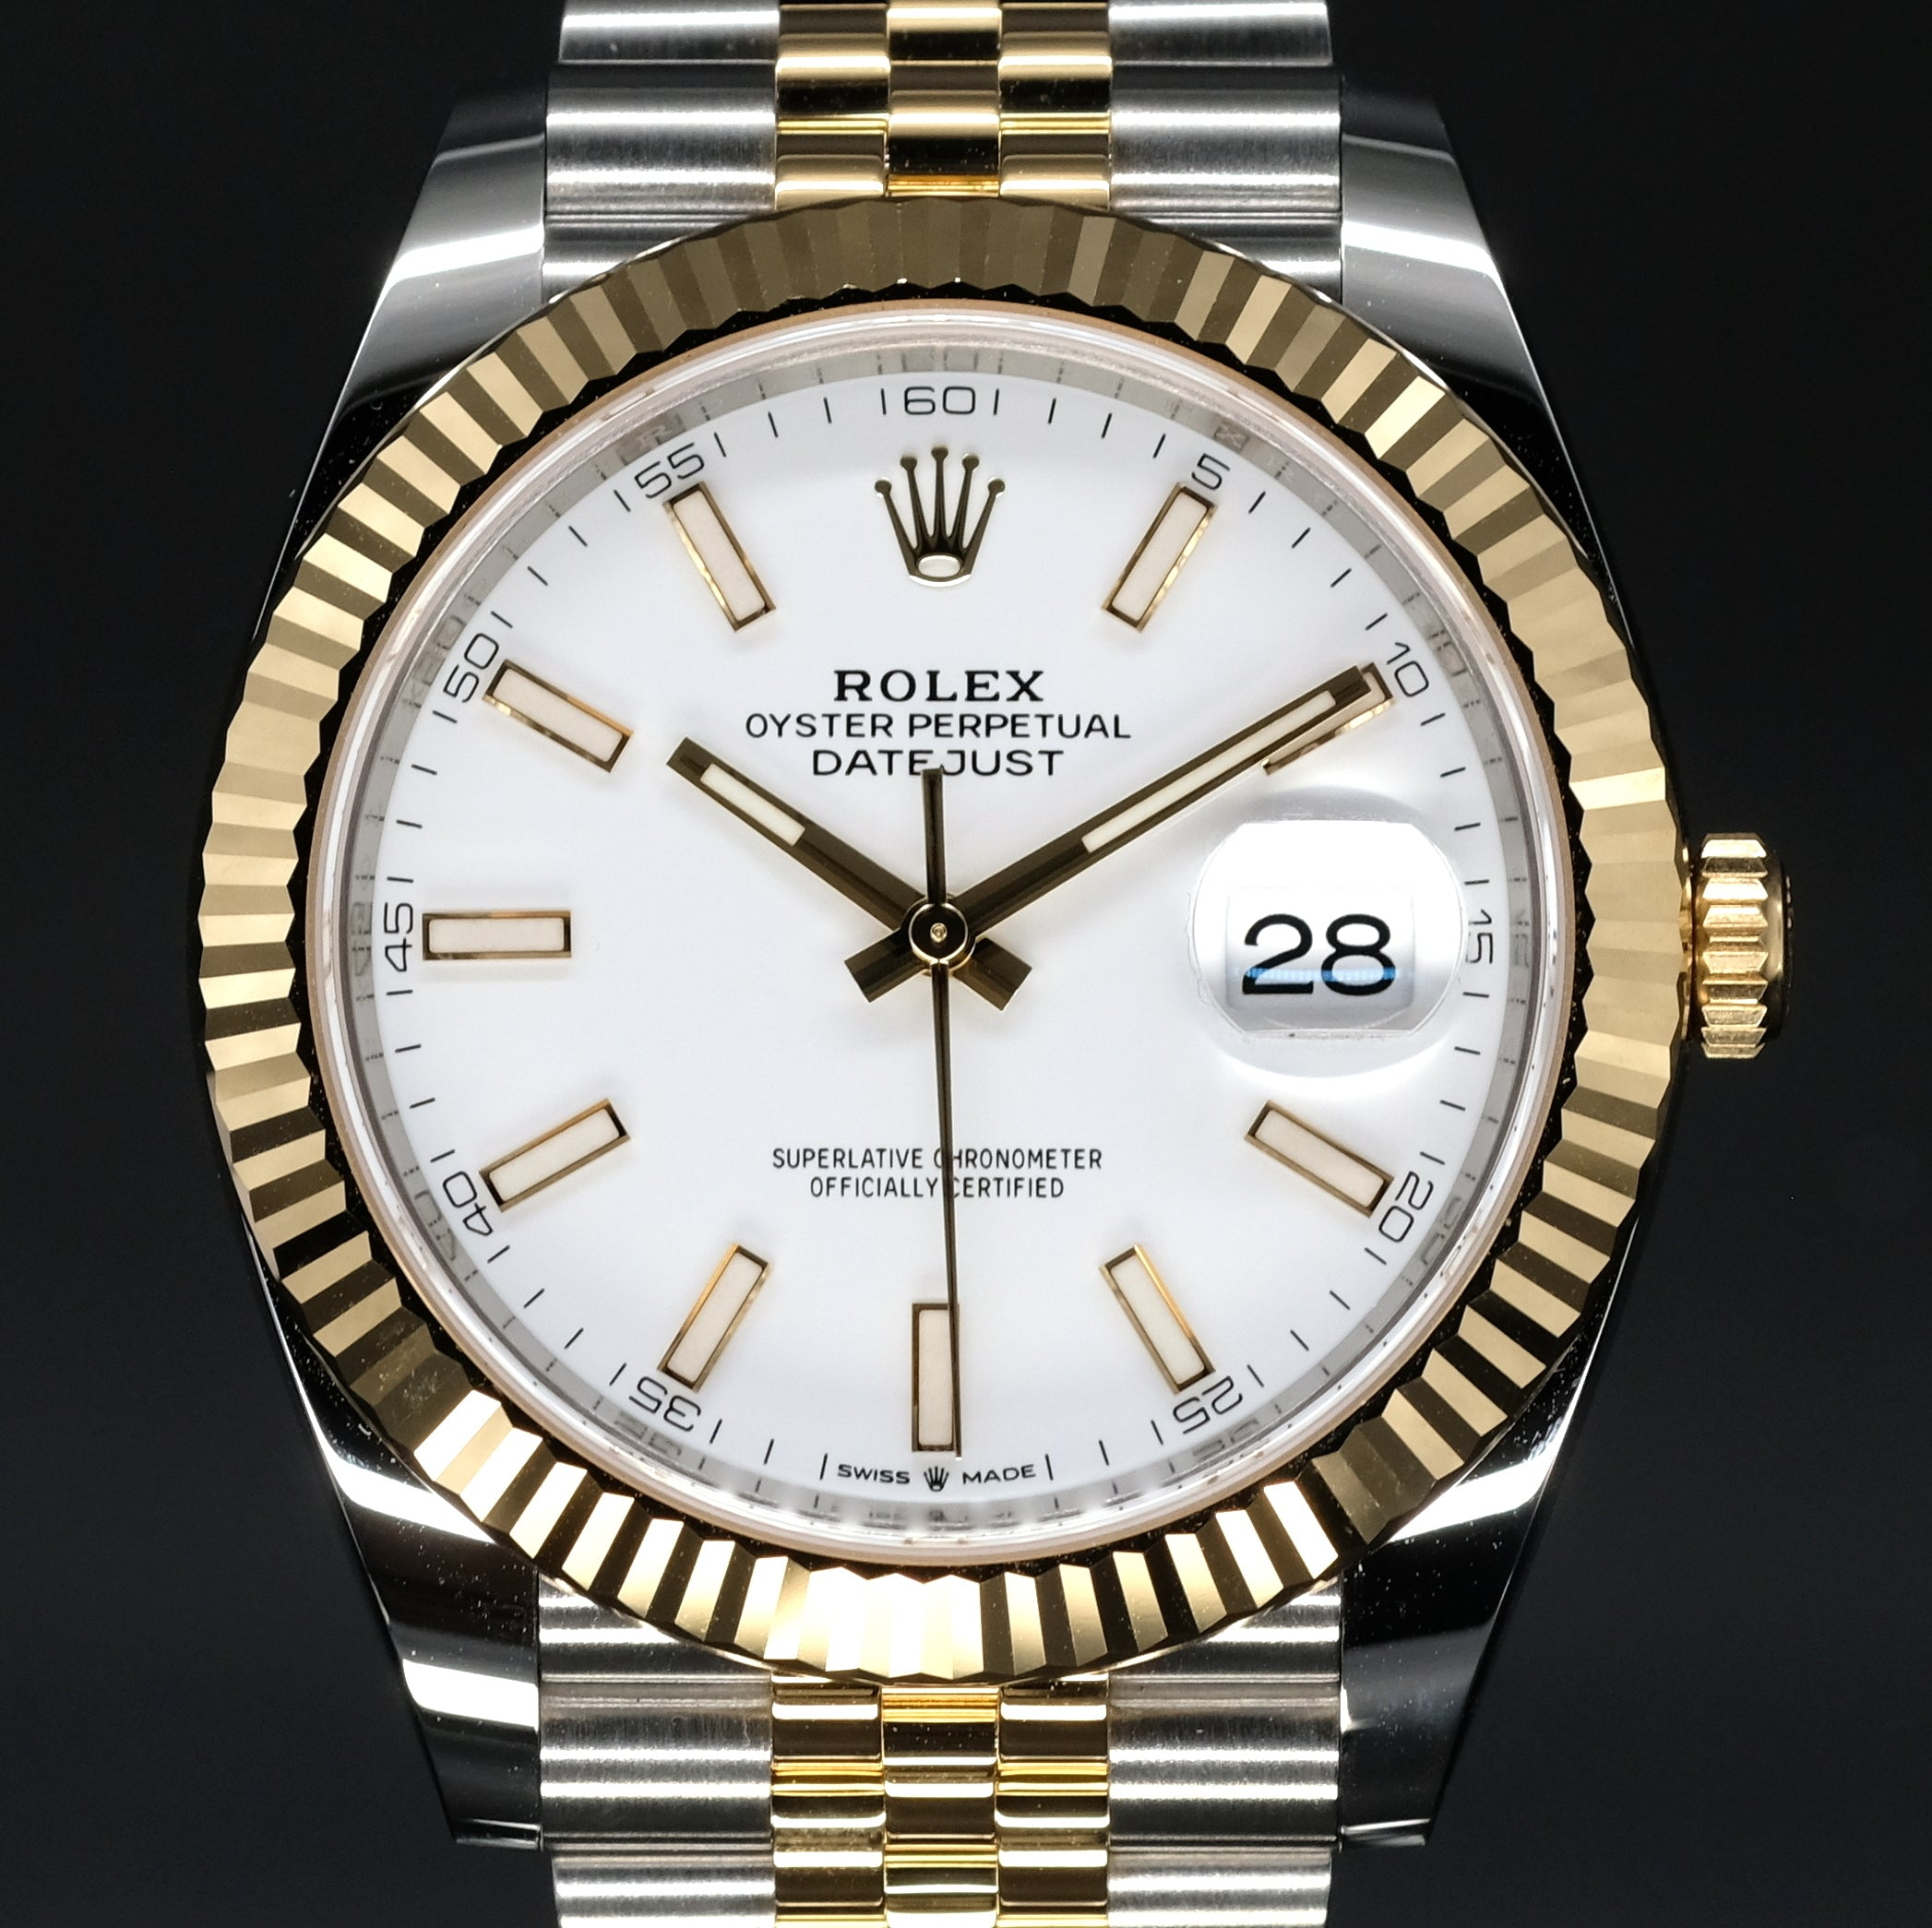 [Brand New Watch] Rolex Datejust 41mm 126333 White Index Dial (Jubilee Bracelet)